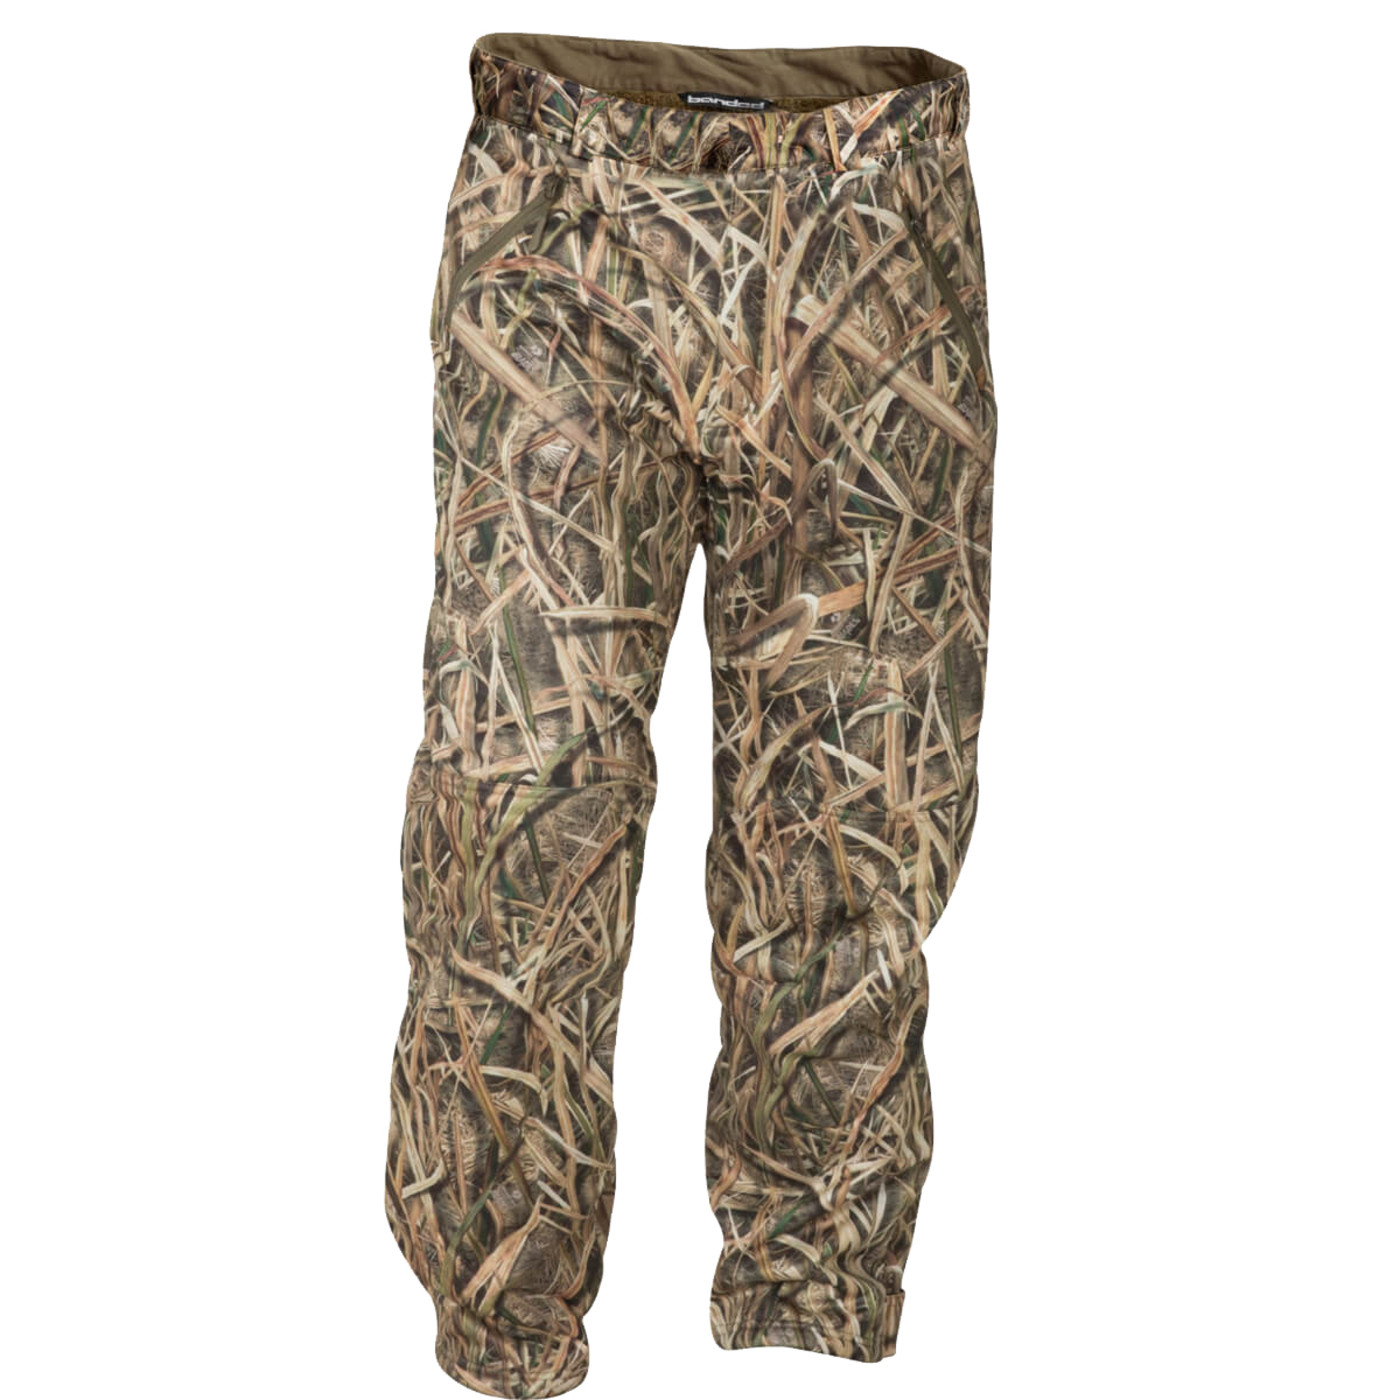 Banded White River Wader Pants in Mossy Oak Shadow Grass Blades Color